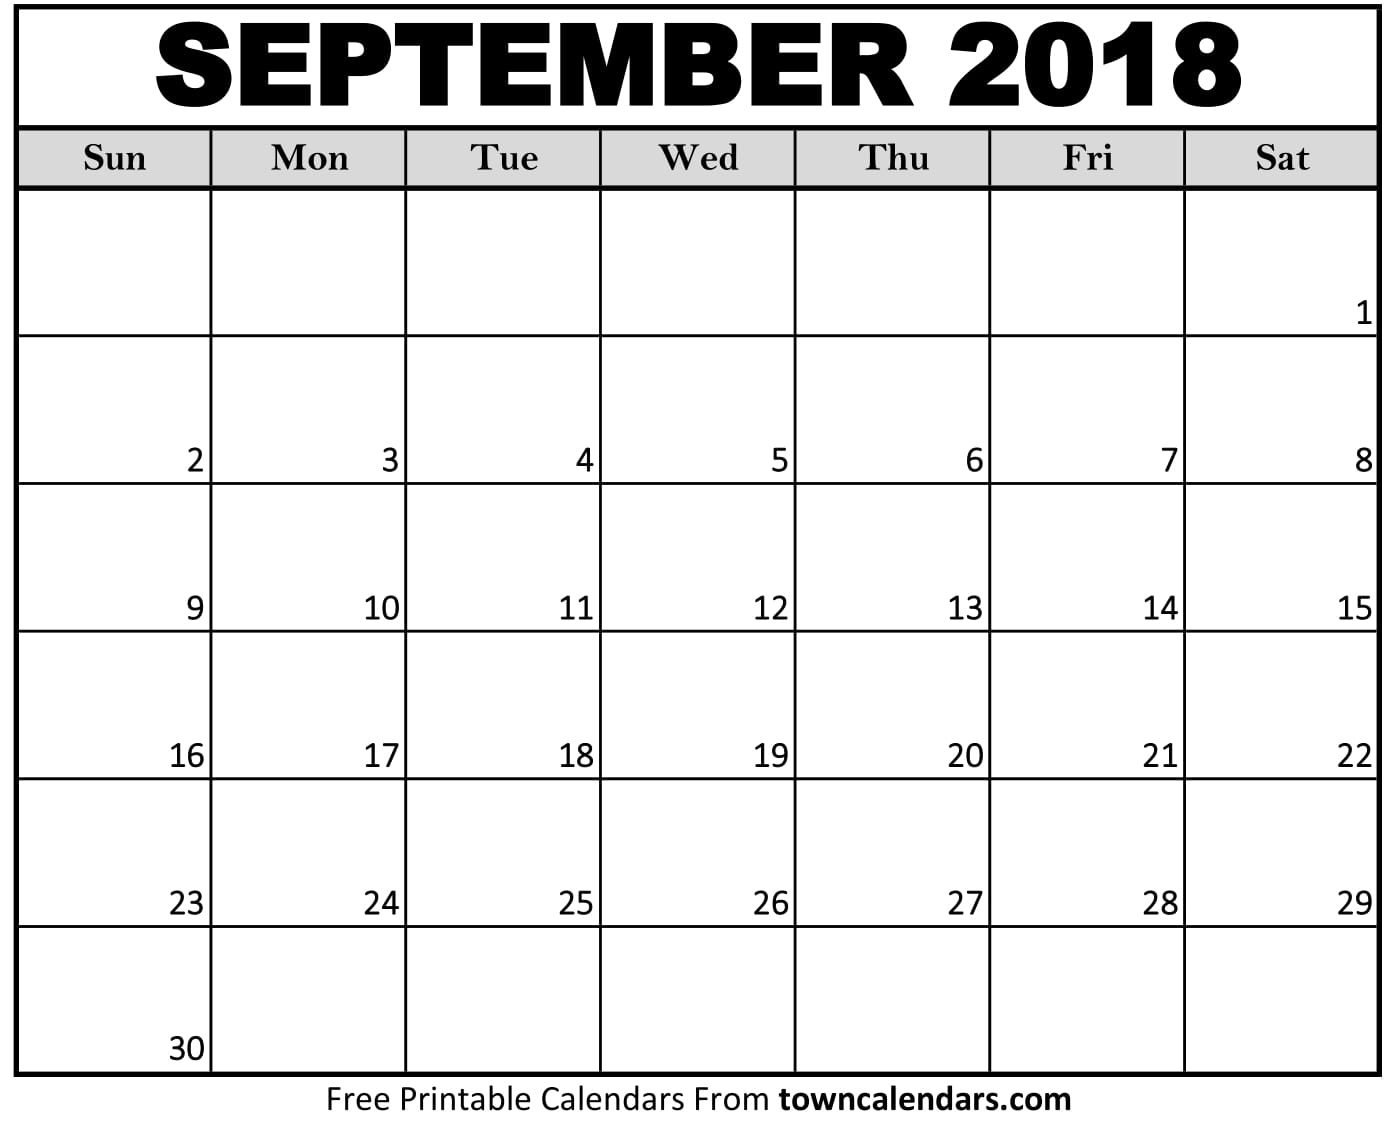 Printable September 2018 Calendar - towncalendars.com